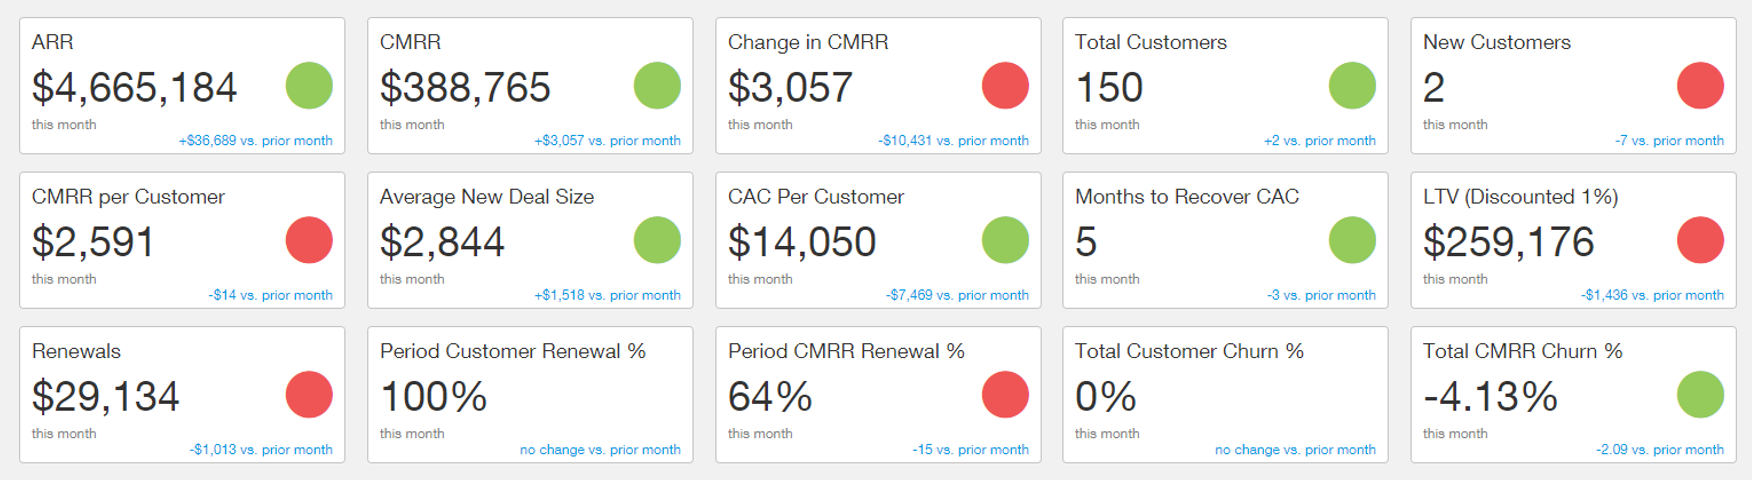 saas dashboard screenshot mas.png